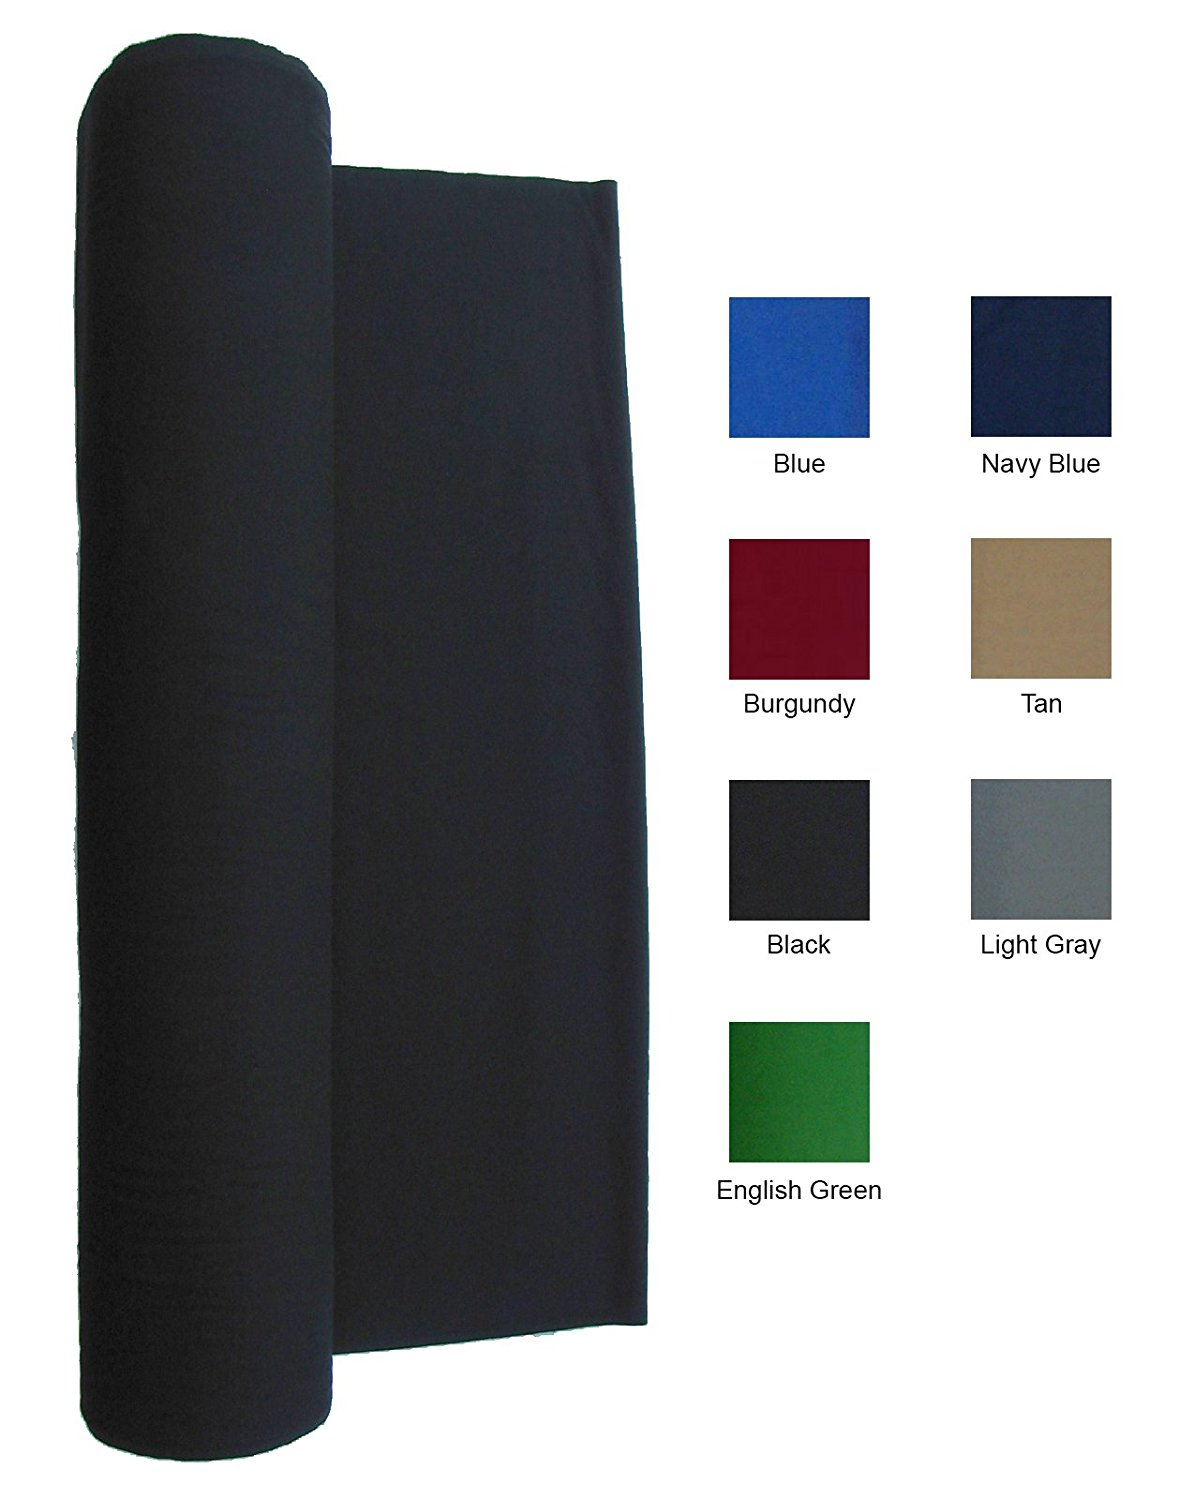 21-Ounce Pool Table Felt - Billiard Cloth - For a 7 Foot Table Black